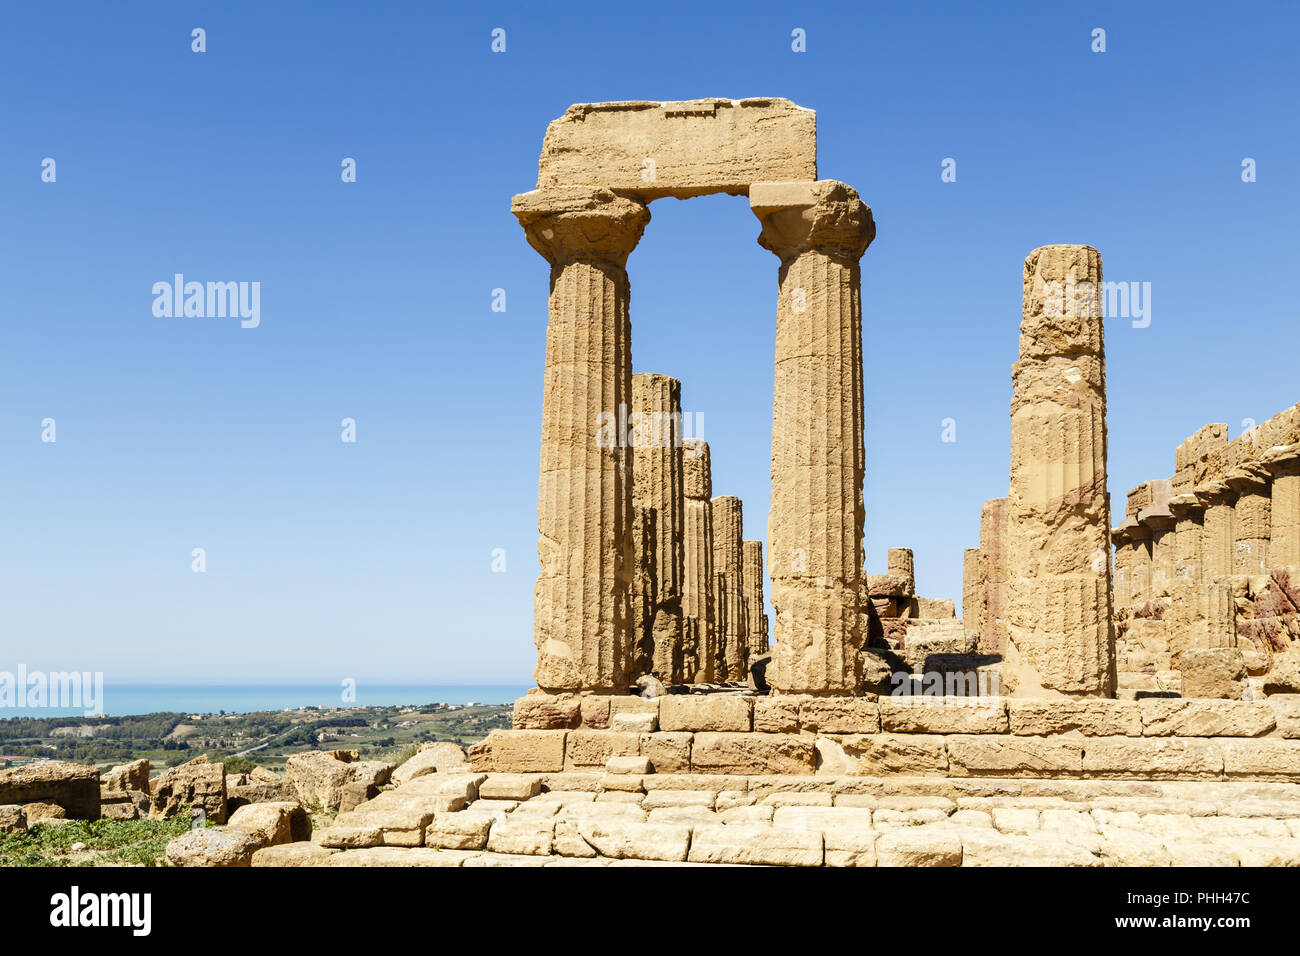 Valley of the Temples, Agrigento, Sizilien, Italien Stockbild